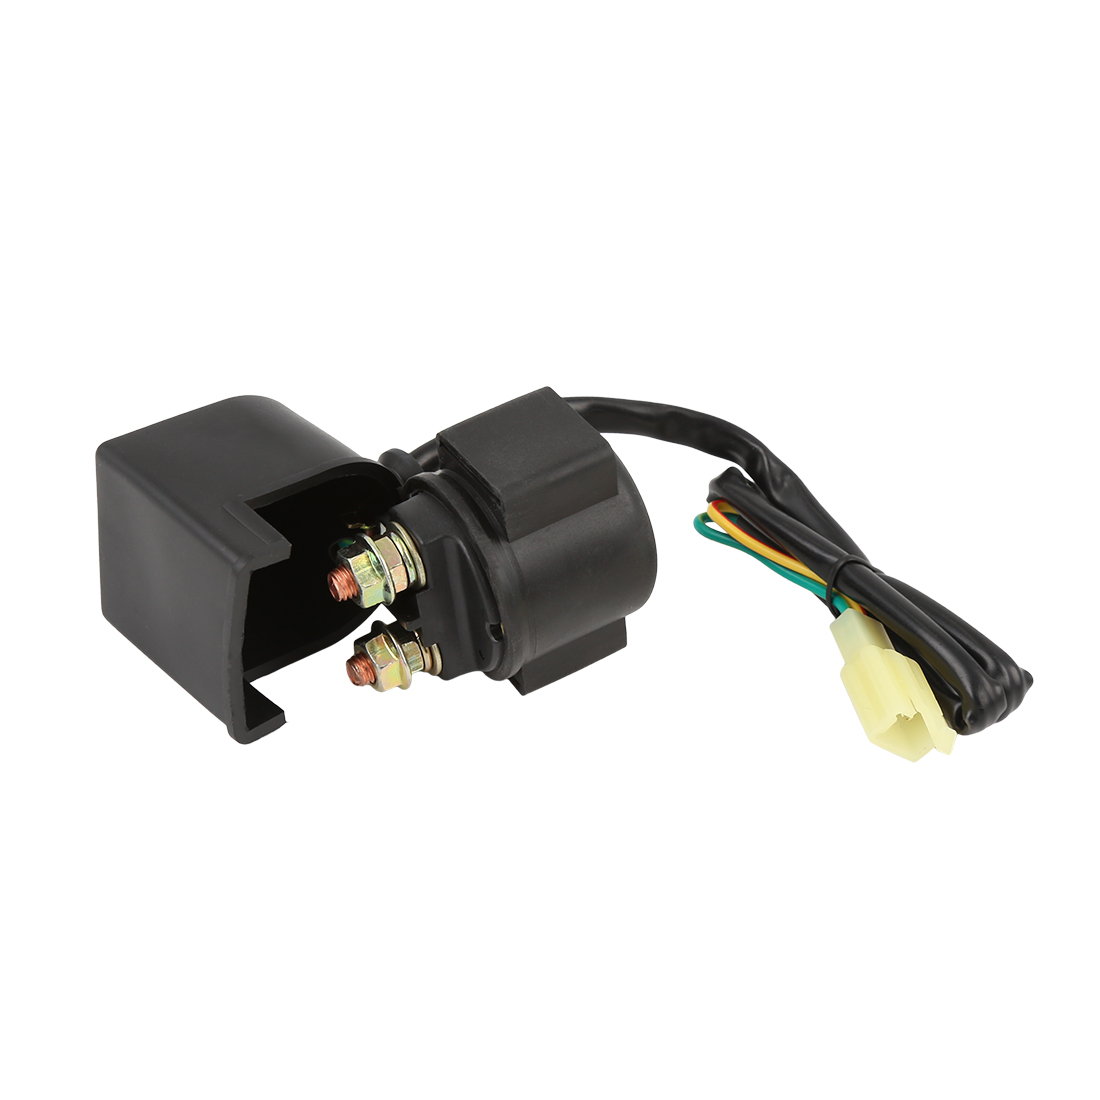 Starter Solenoid Relay for Honda 35850-HM3-000 35850-HB3-771 35850-HM8-A41